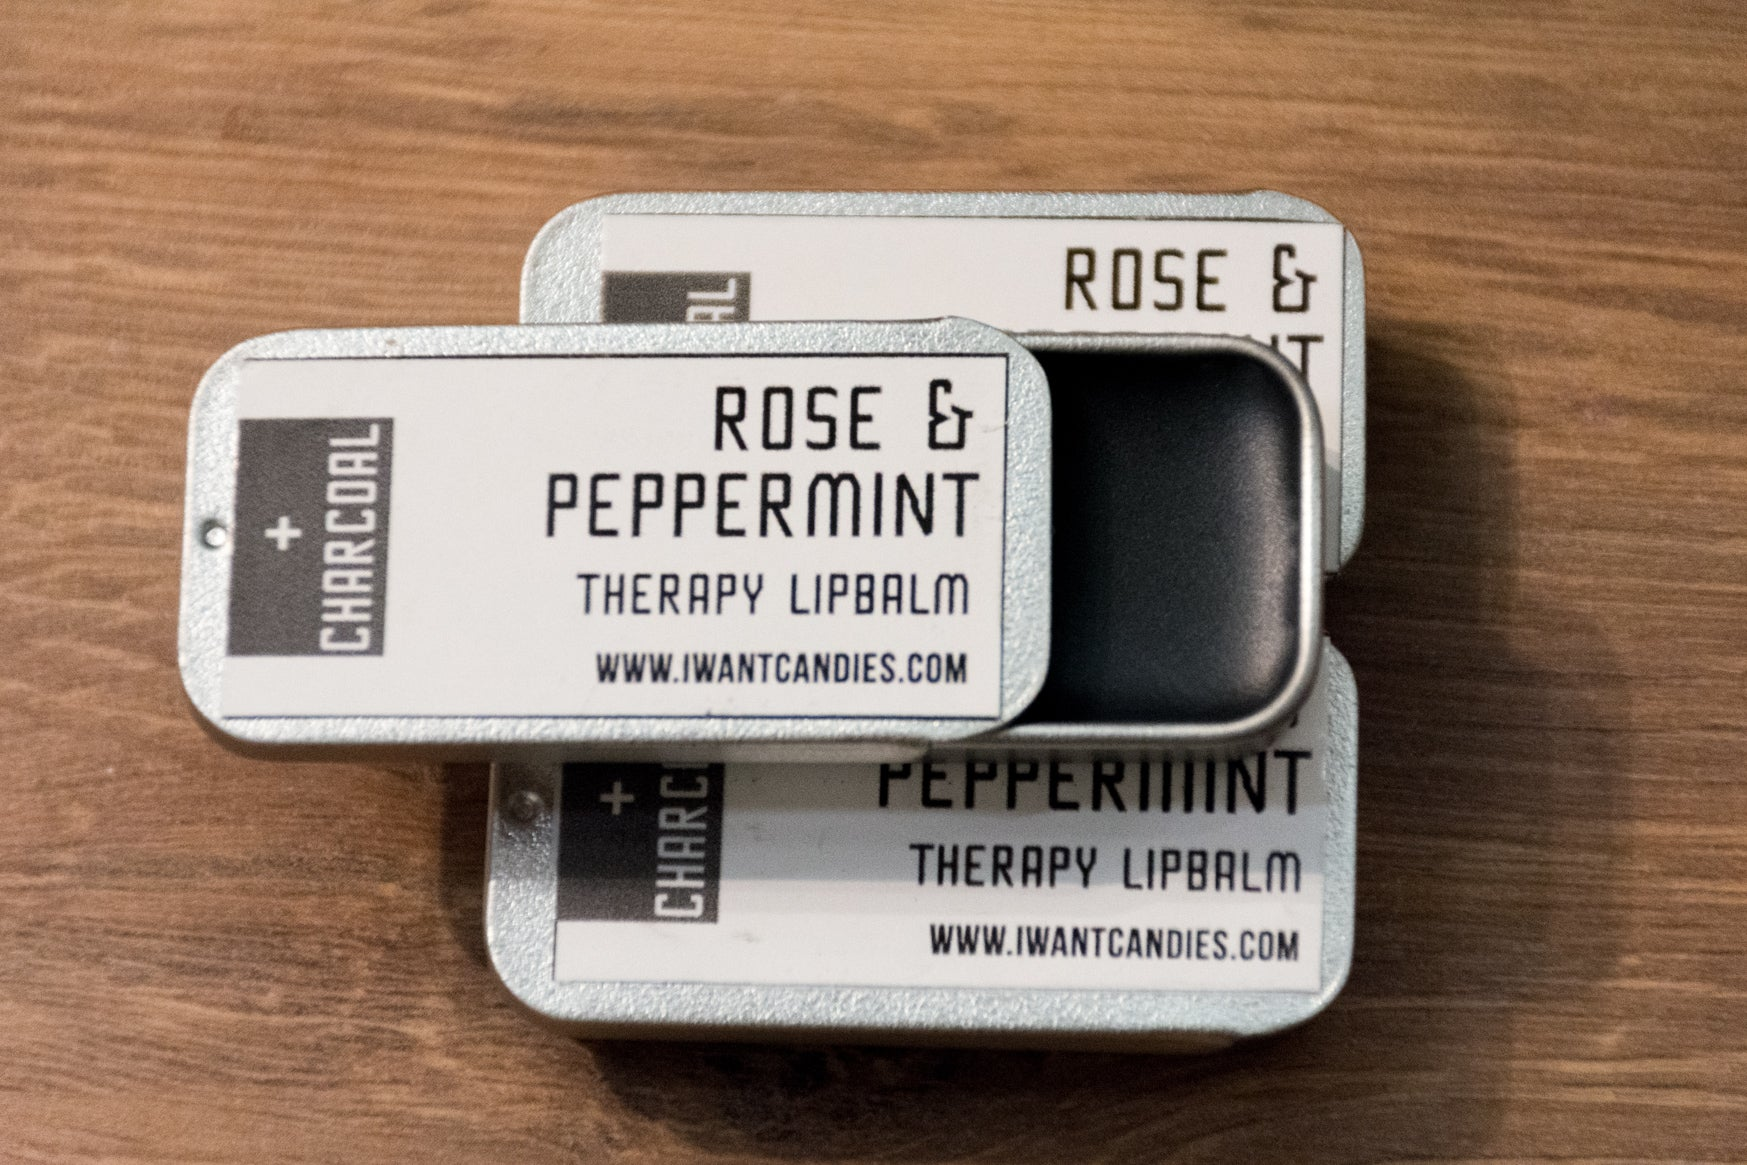 Rose & Peppermint Therapy Lip Balm